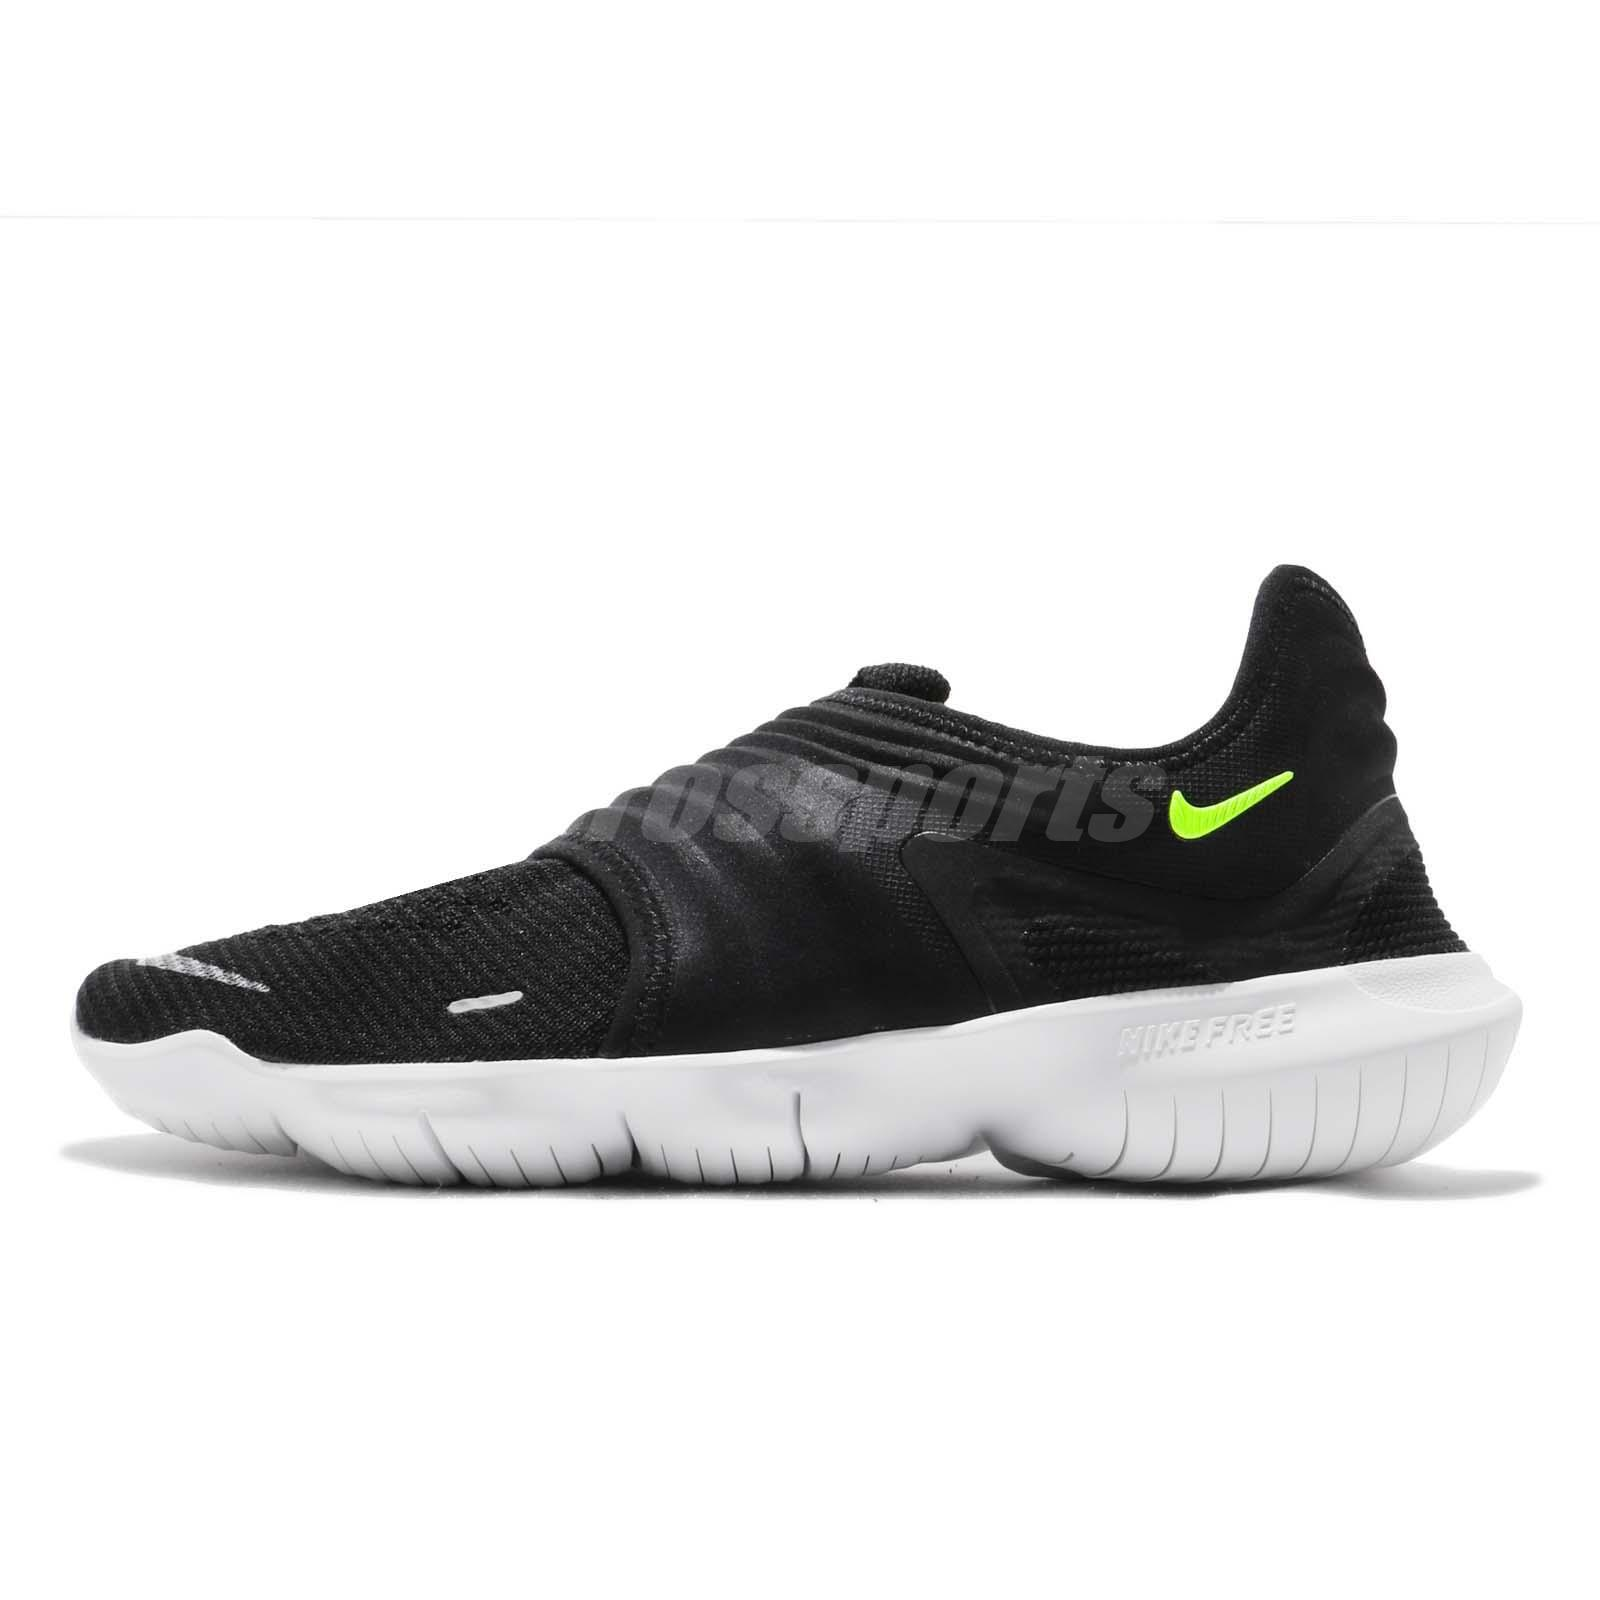 low priced 57e4e 7069c Details about Nike Free RN Flyknit 3.0 Black Volt White Men Running Shoes  Sneakers AQ5707-001